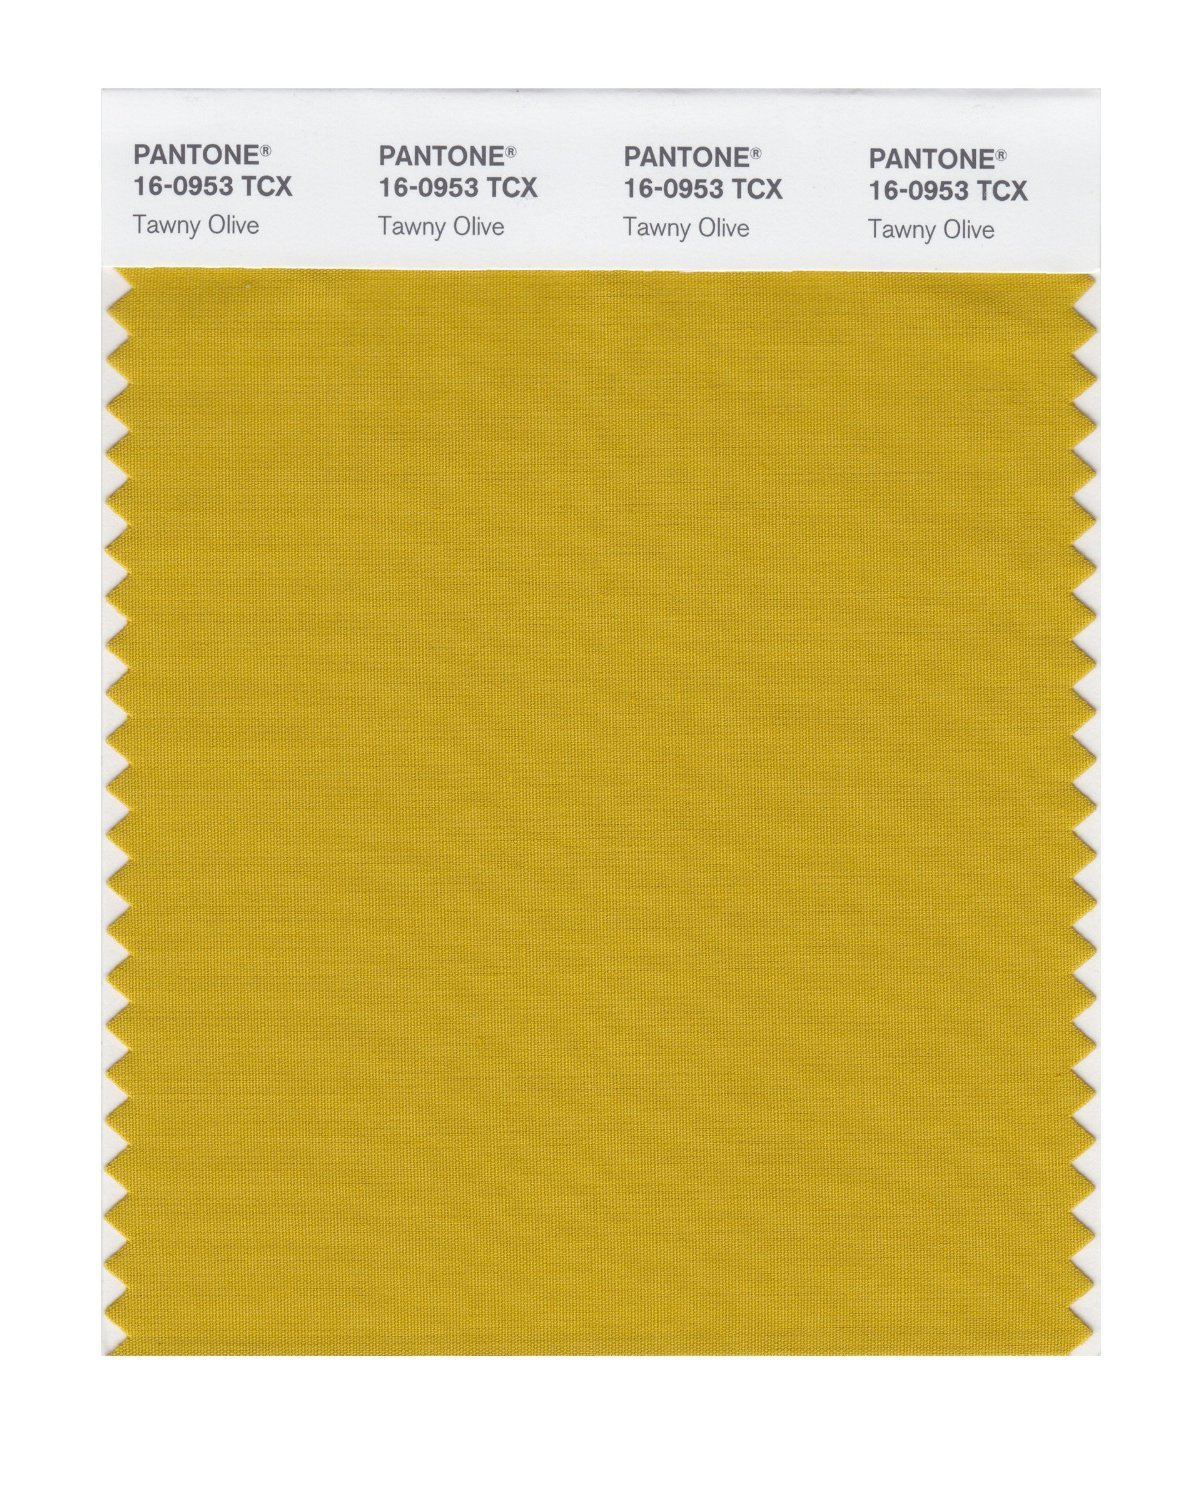 Pantone Smart Swatch 16-0953 Tawny Olive